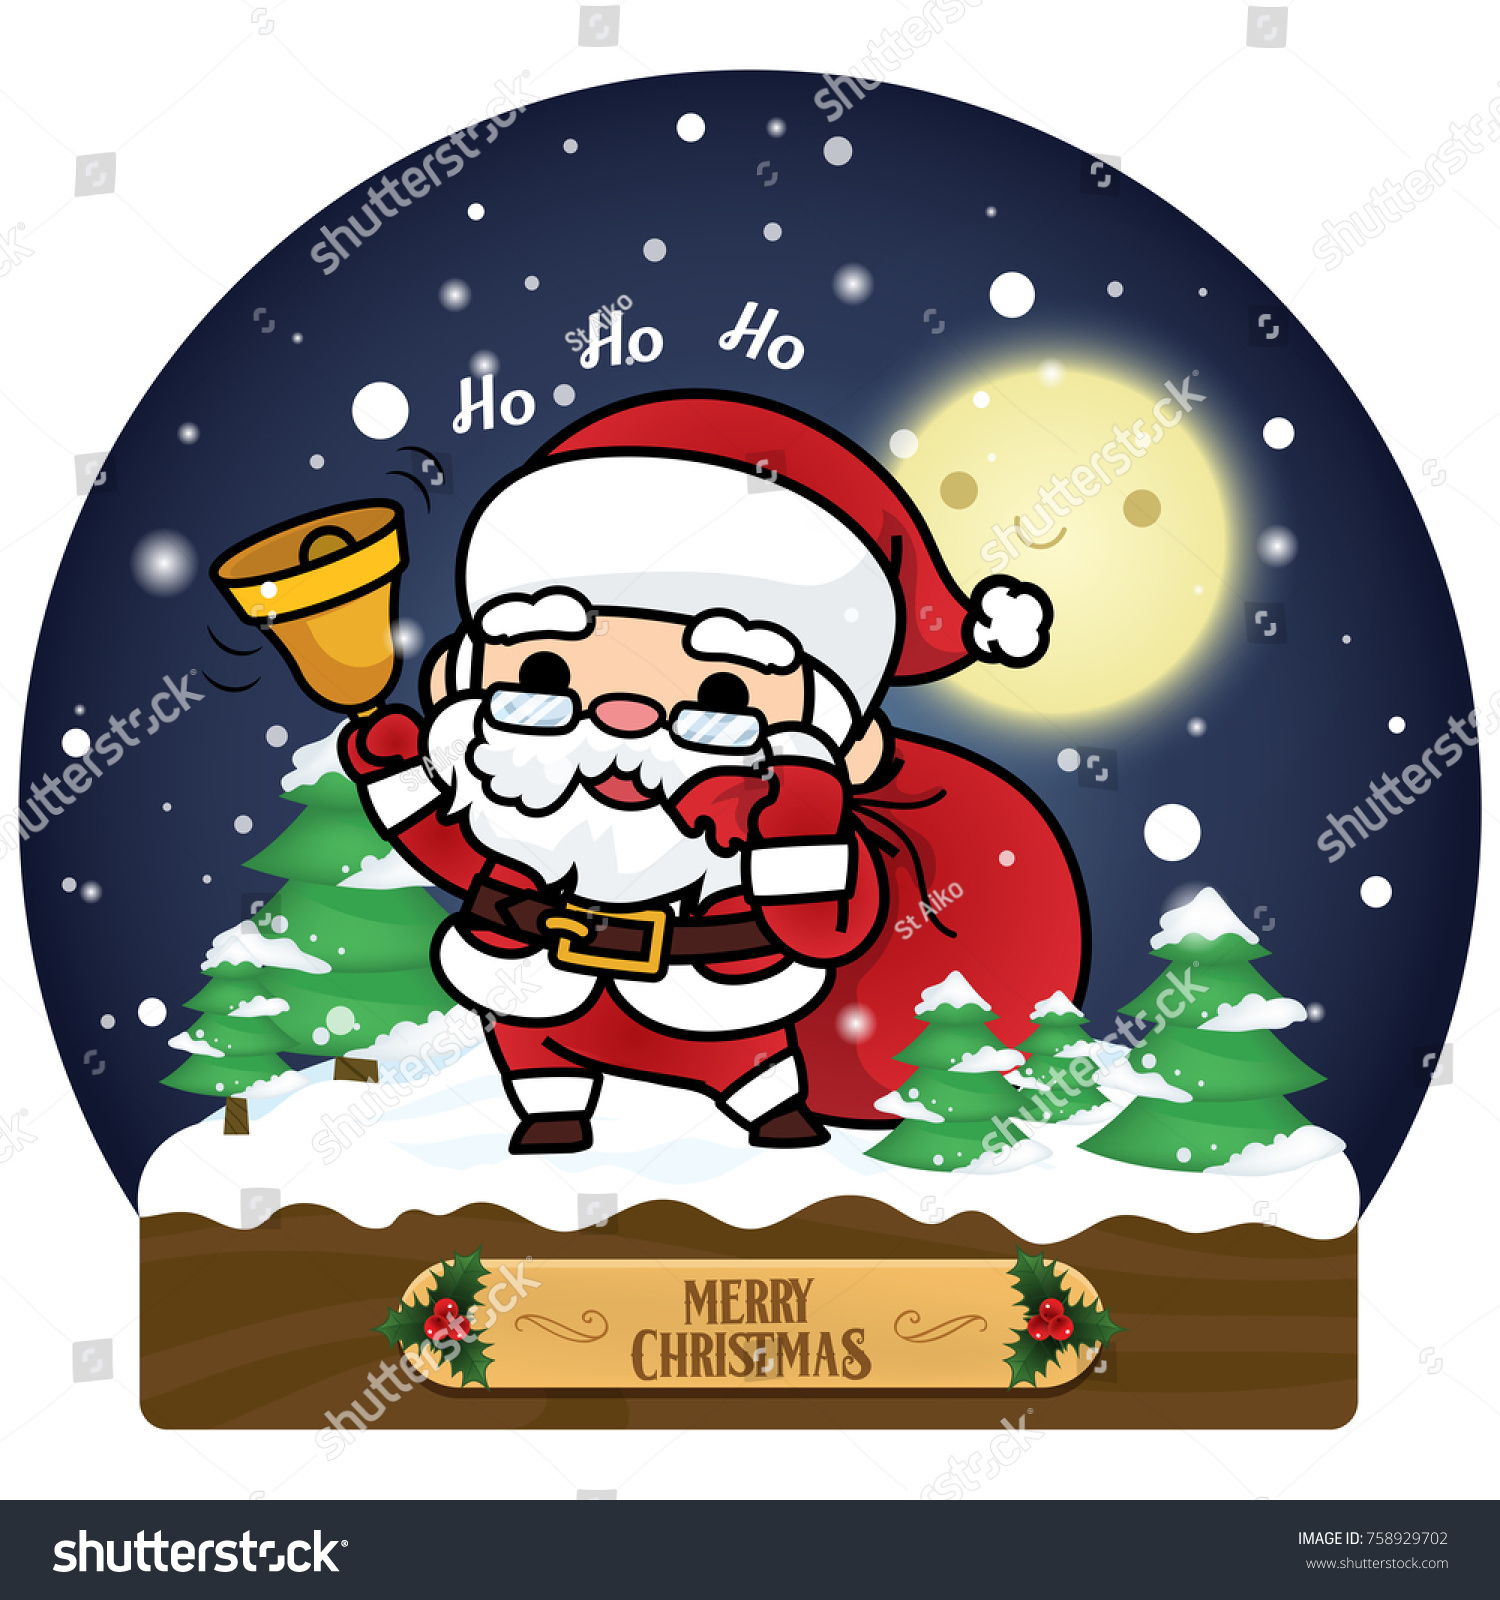 Merry christmas card illustration santa claus stock illustration merry christmas card illustration santa claus cute cartoon style with snowman reindeer and moon kristyandbryce Image collections